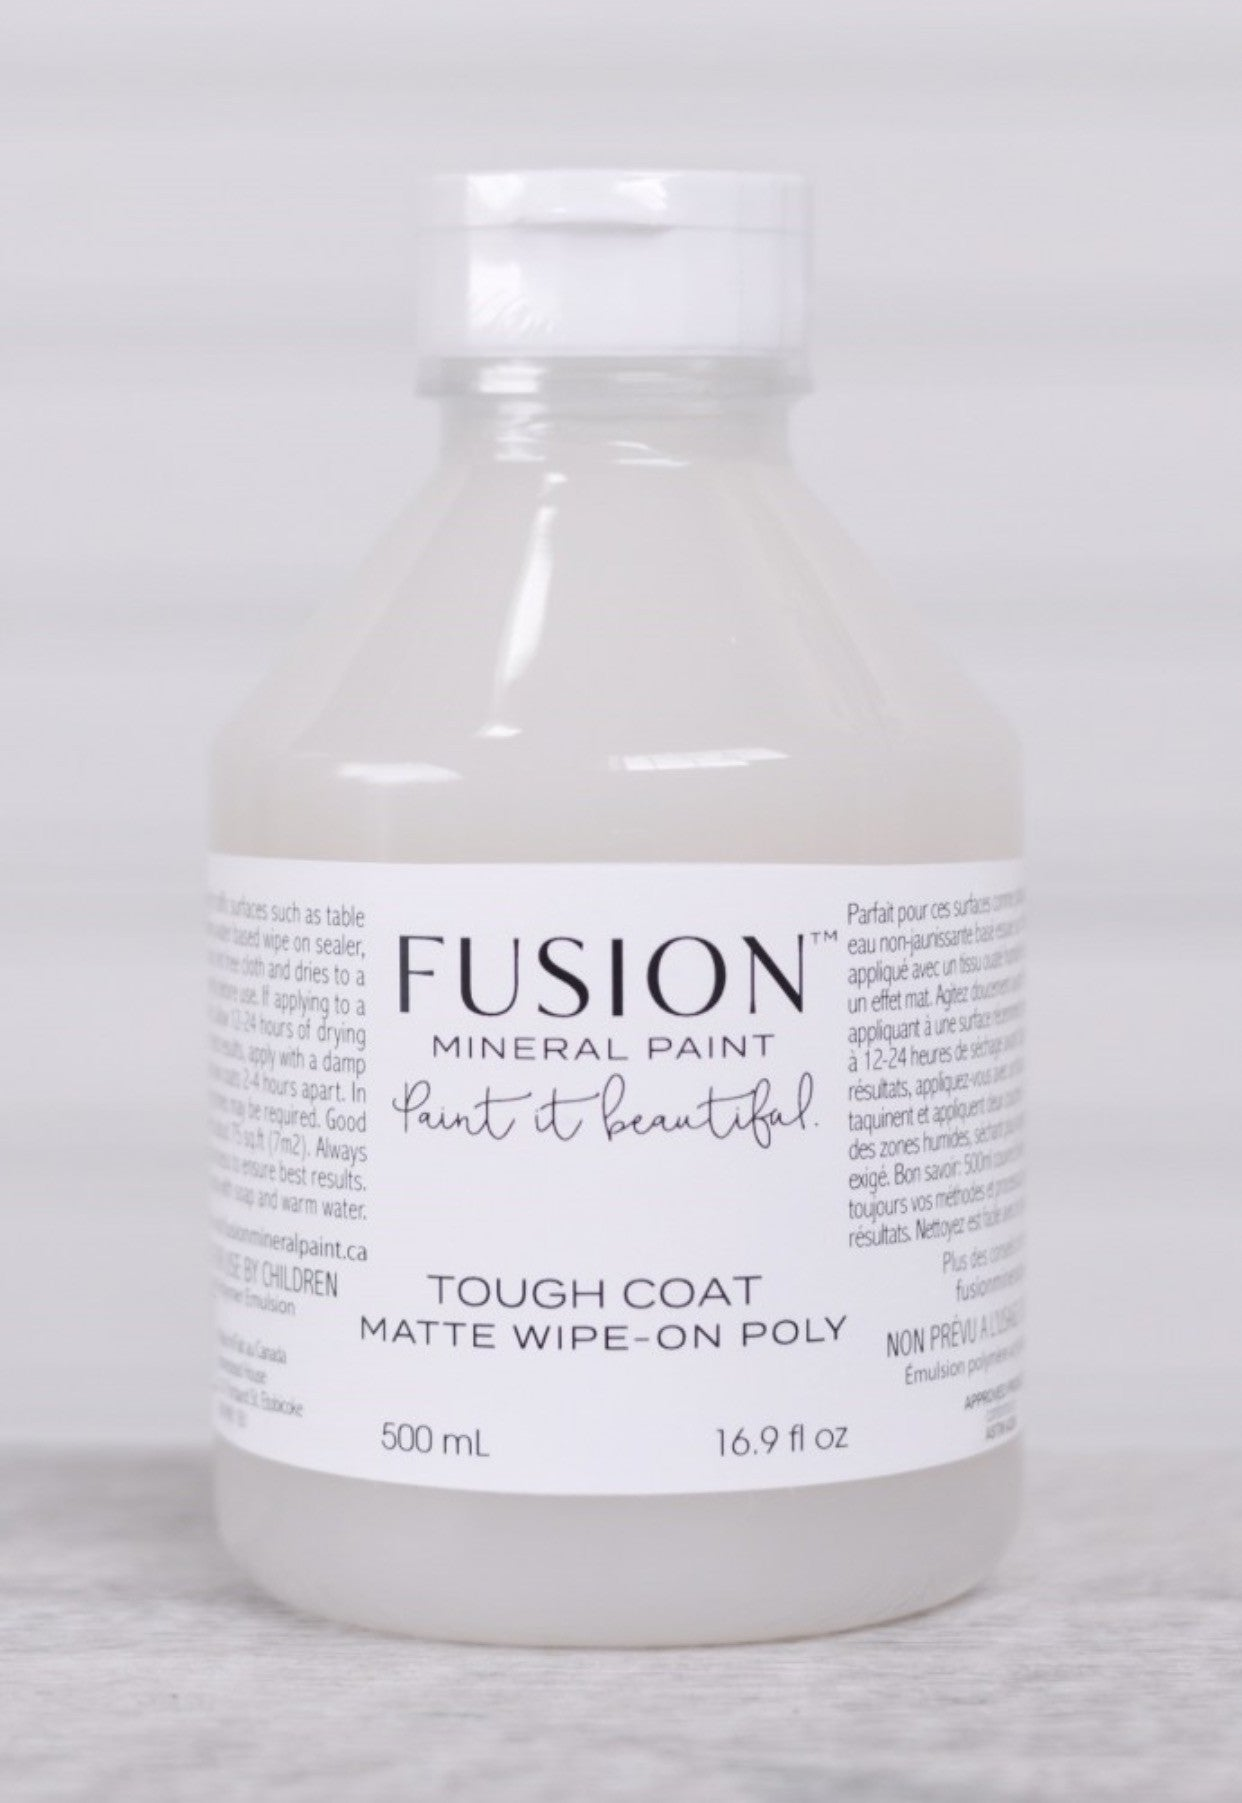 Fusion Mineral Paint - Clear Tough Coat Matte